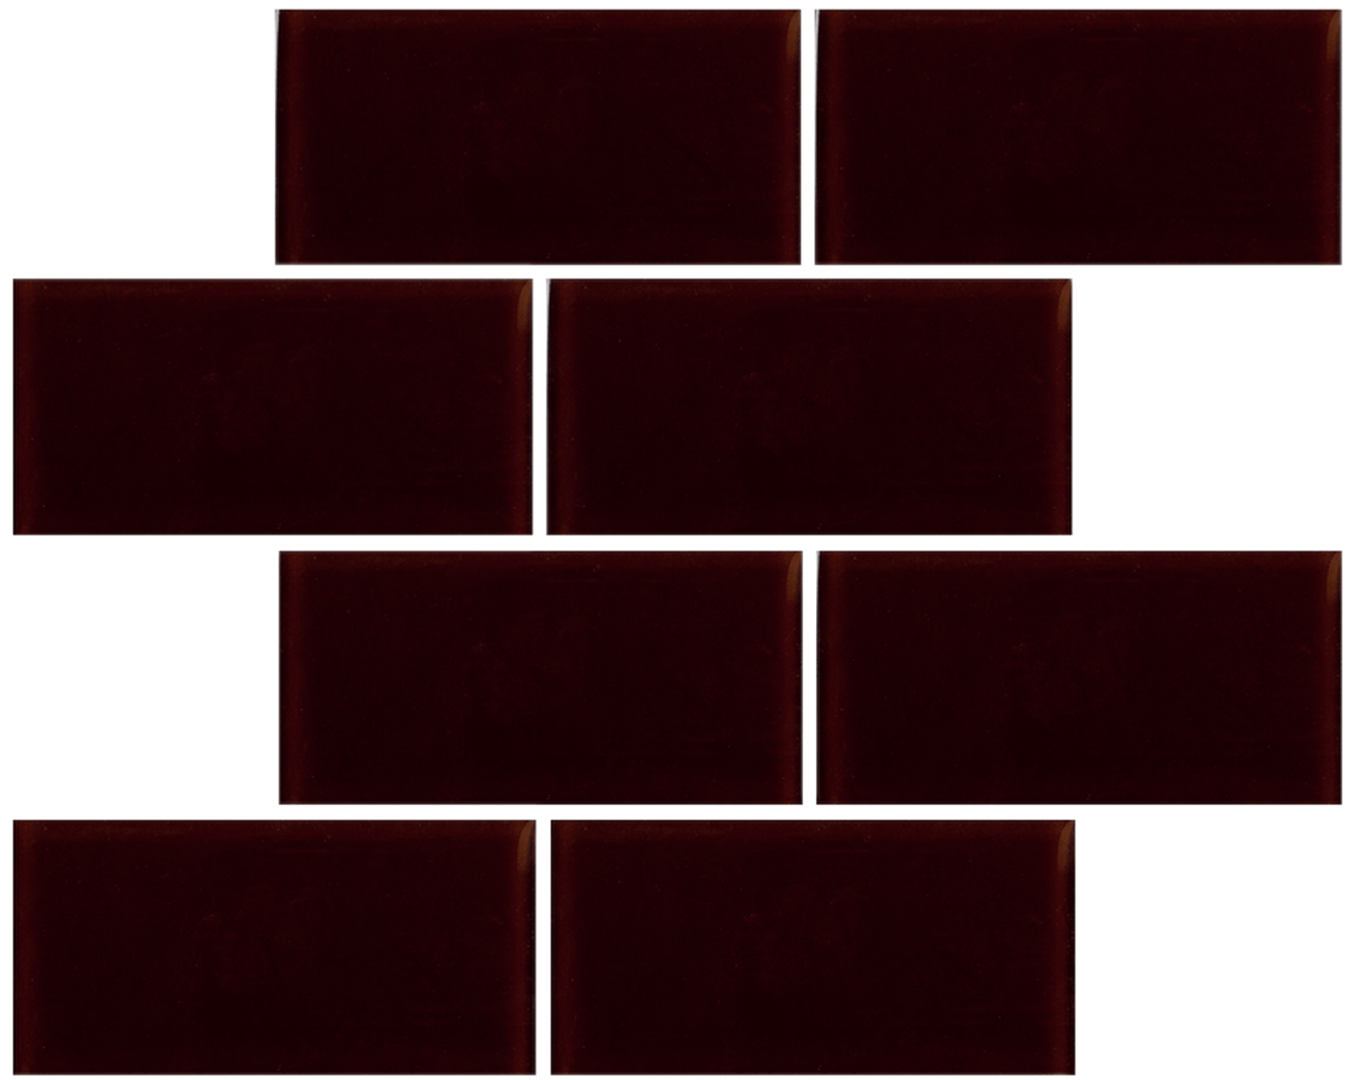 Crystal 3 x 6 Subway Tiles Ruby Red